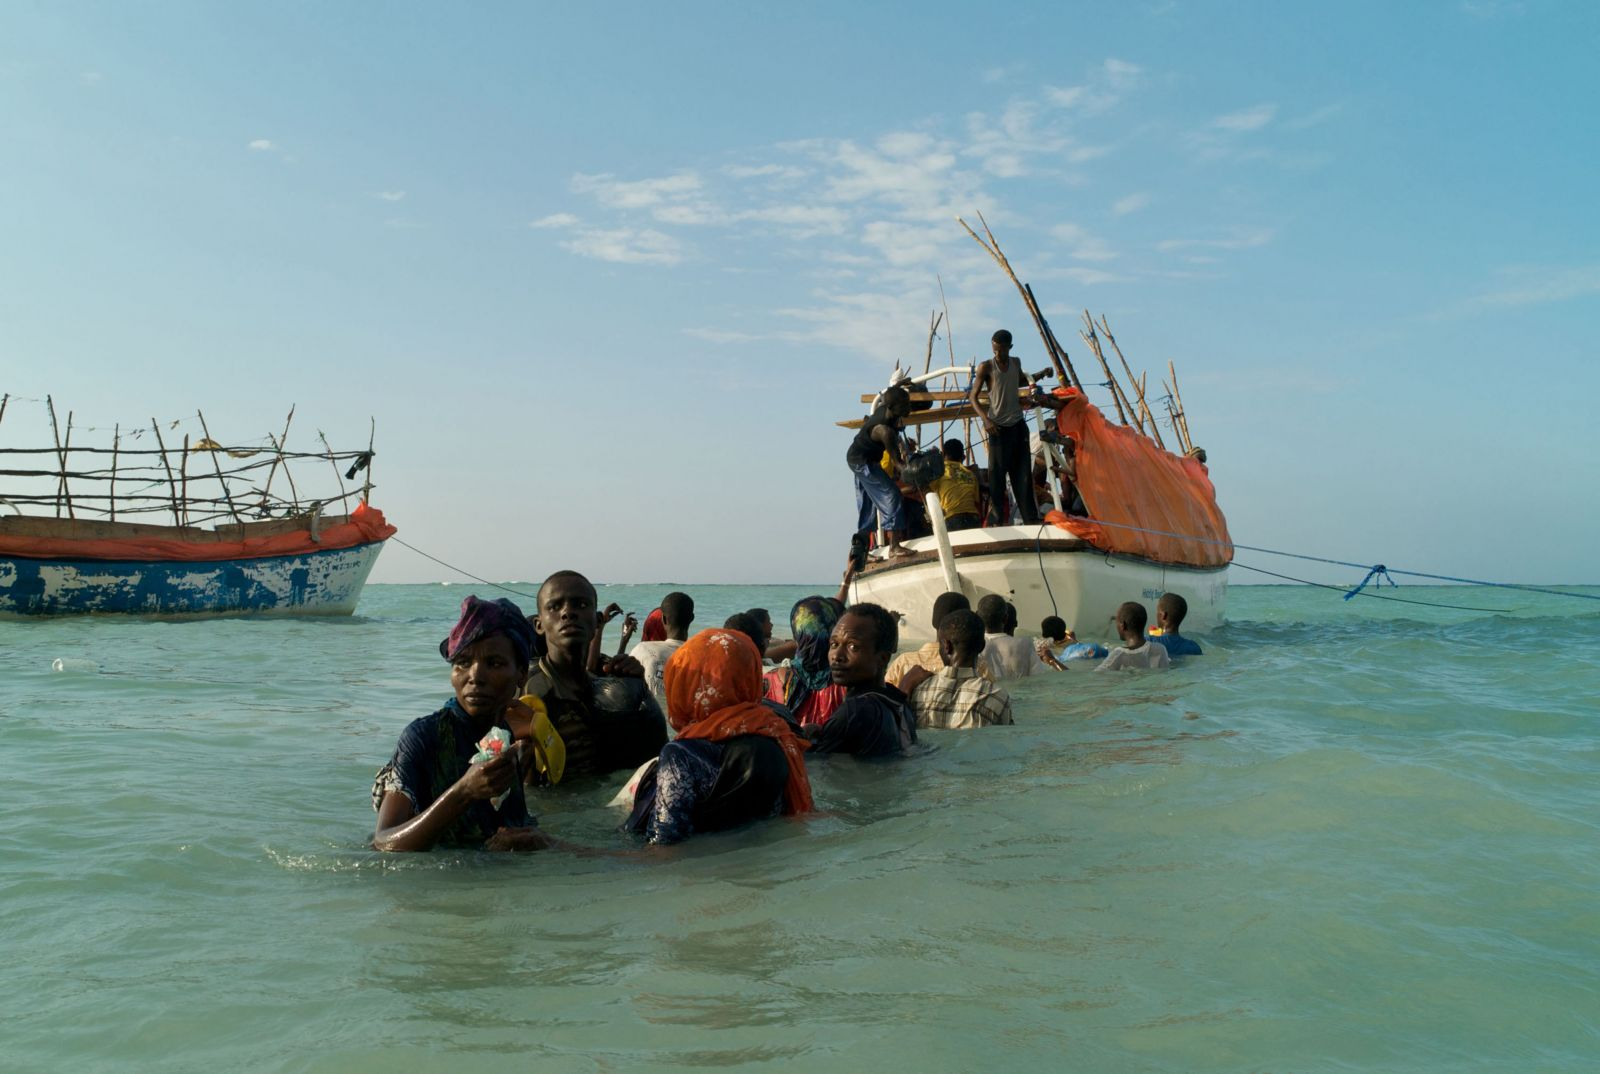 Migrants prepare to cast off the beach at Shimbiro, Somalia, for a perilous journey across the Gulf of Aden to Yemen and beyond. Photo: Alixandra Fazina/Noor